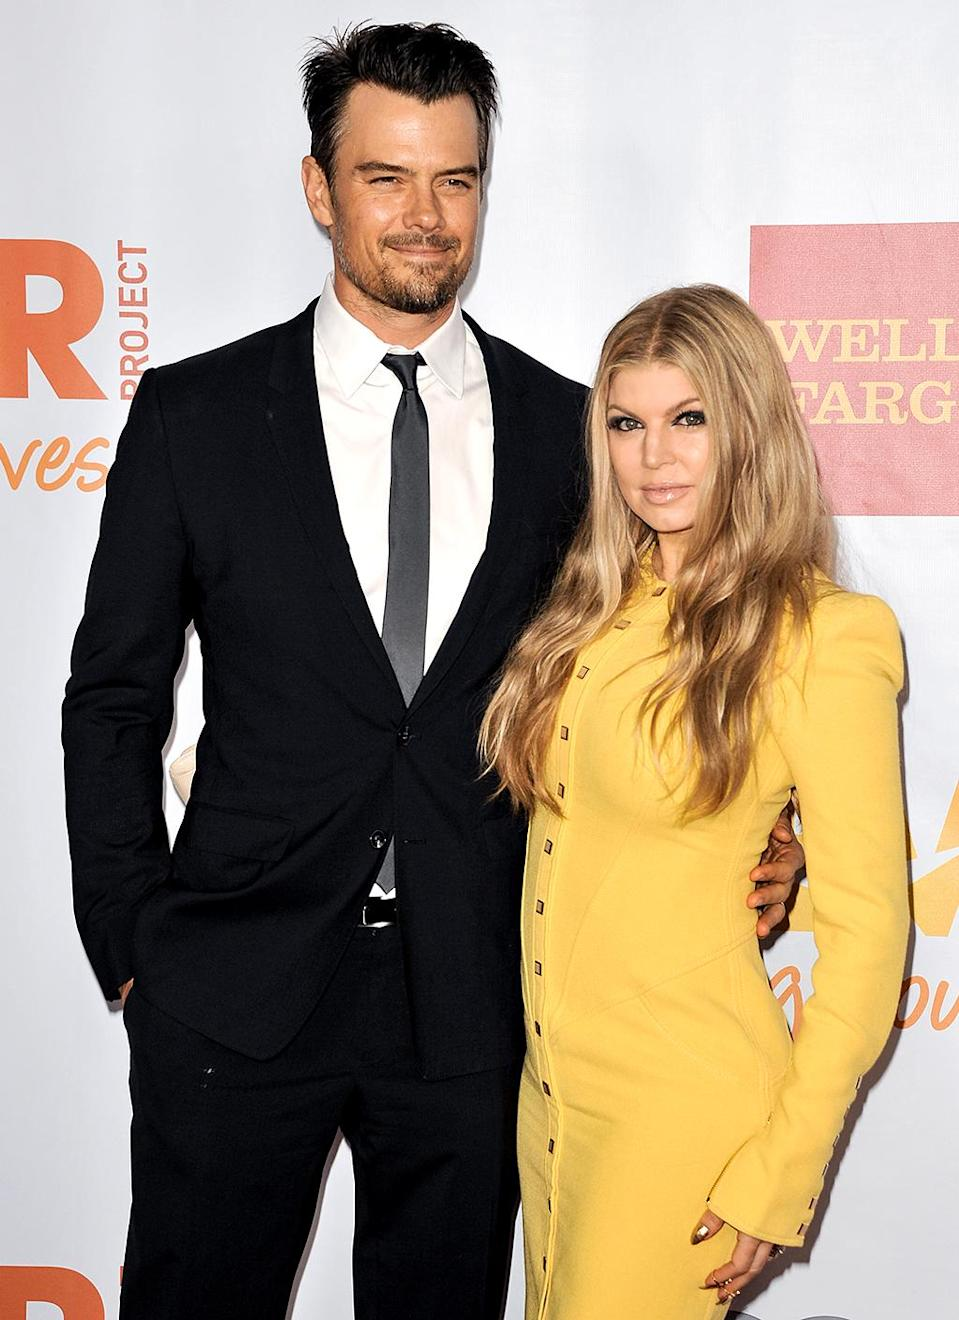 """<p>OK, so this isn't exactly <i>cute</i>, but it's certainly an unforgettable meet-up story. Former soap star Josh was starring in the short-lived show <i>Las Vegas</i> and was asked by <i>InStyle</i> to name his celebrity crush. He said the Black Eyed Peas singer and also detailed a sexy dream he had had about her. Fergie and her band later made an appearance on <i>Las Vegas</i>, and on the set she called him out. """"'I read you had a dream,'"""" she later told <i>Playboy</i>. """"I asked, 'Was it good?' He said it was. So we hit it off."""" They married in 2009 and welcomed son Axl in 2013. (Photo: Richard Shotwell/Invision/AP) </p>"""